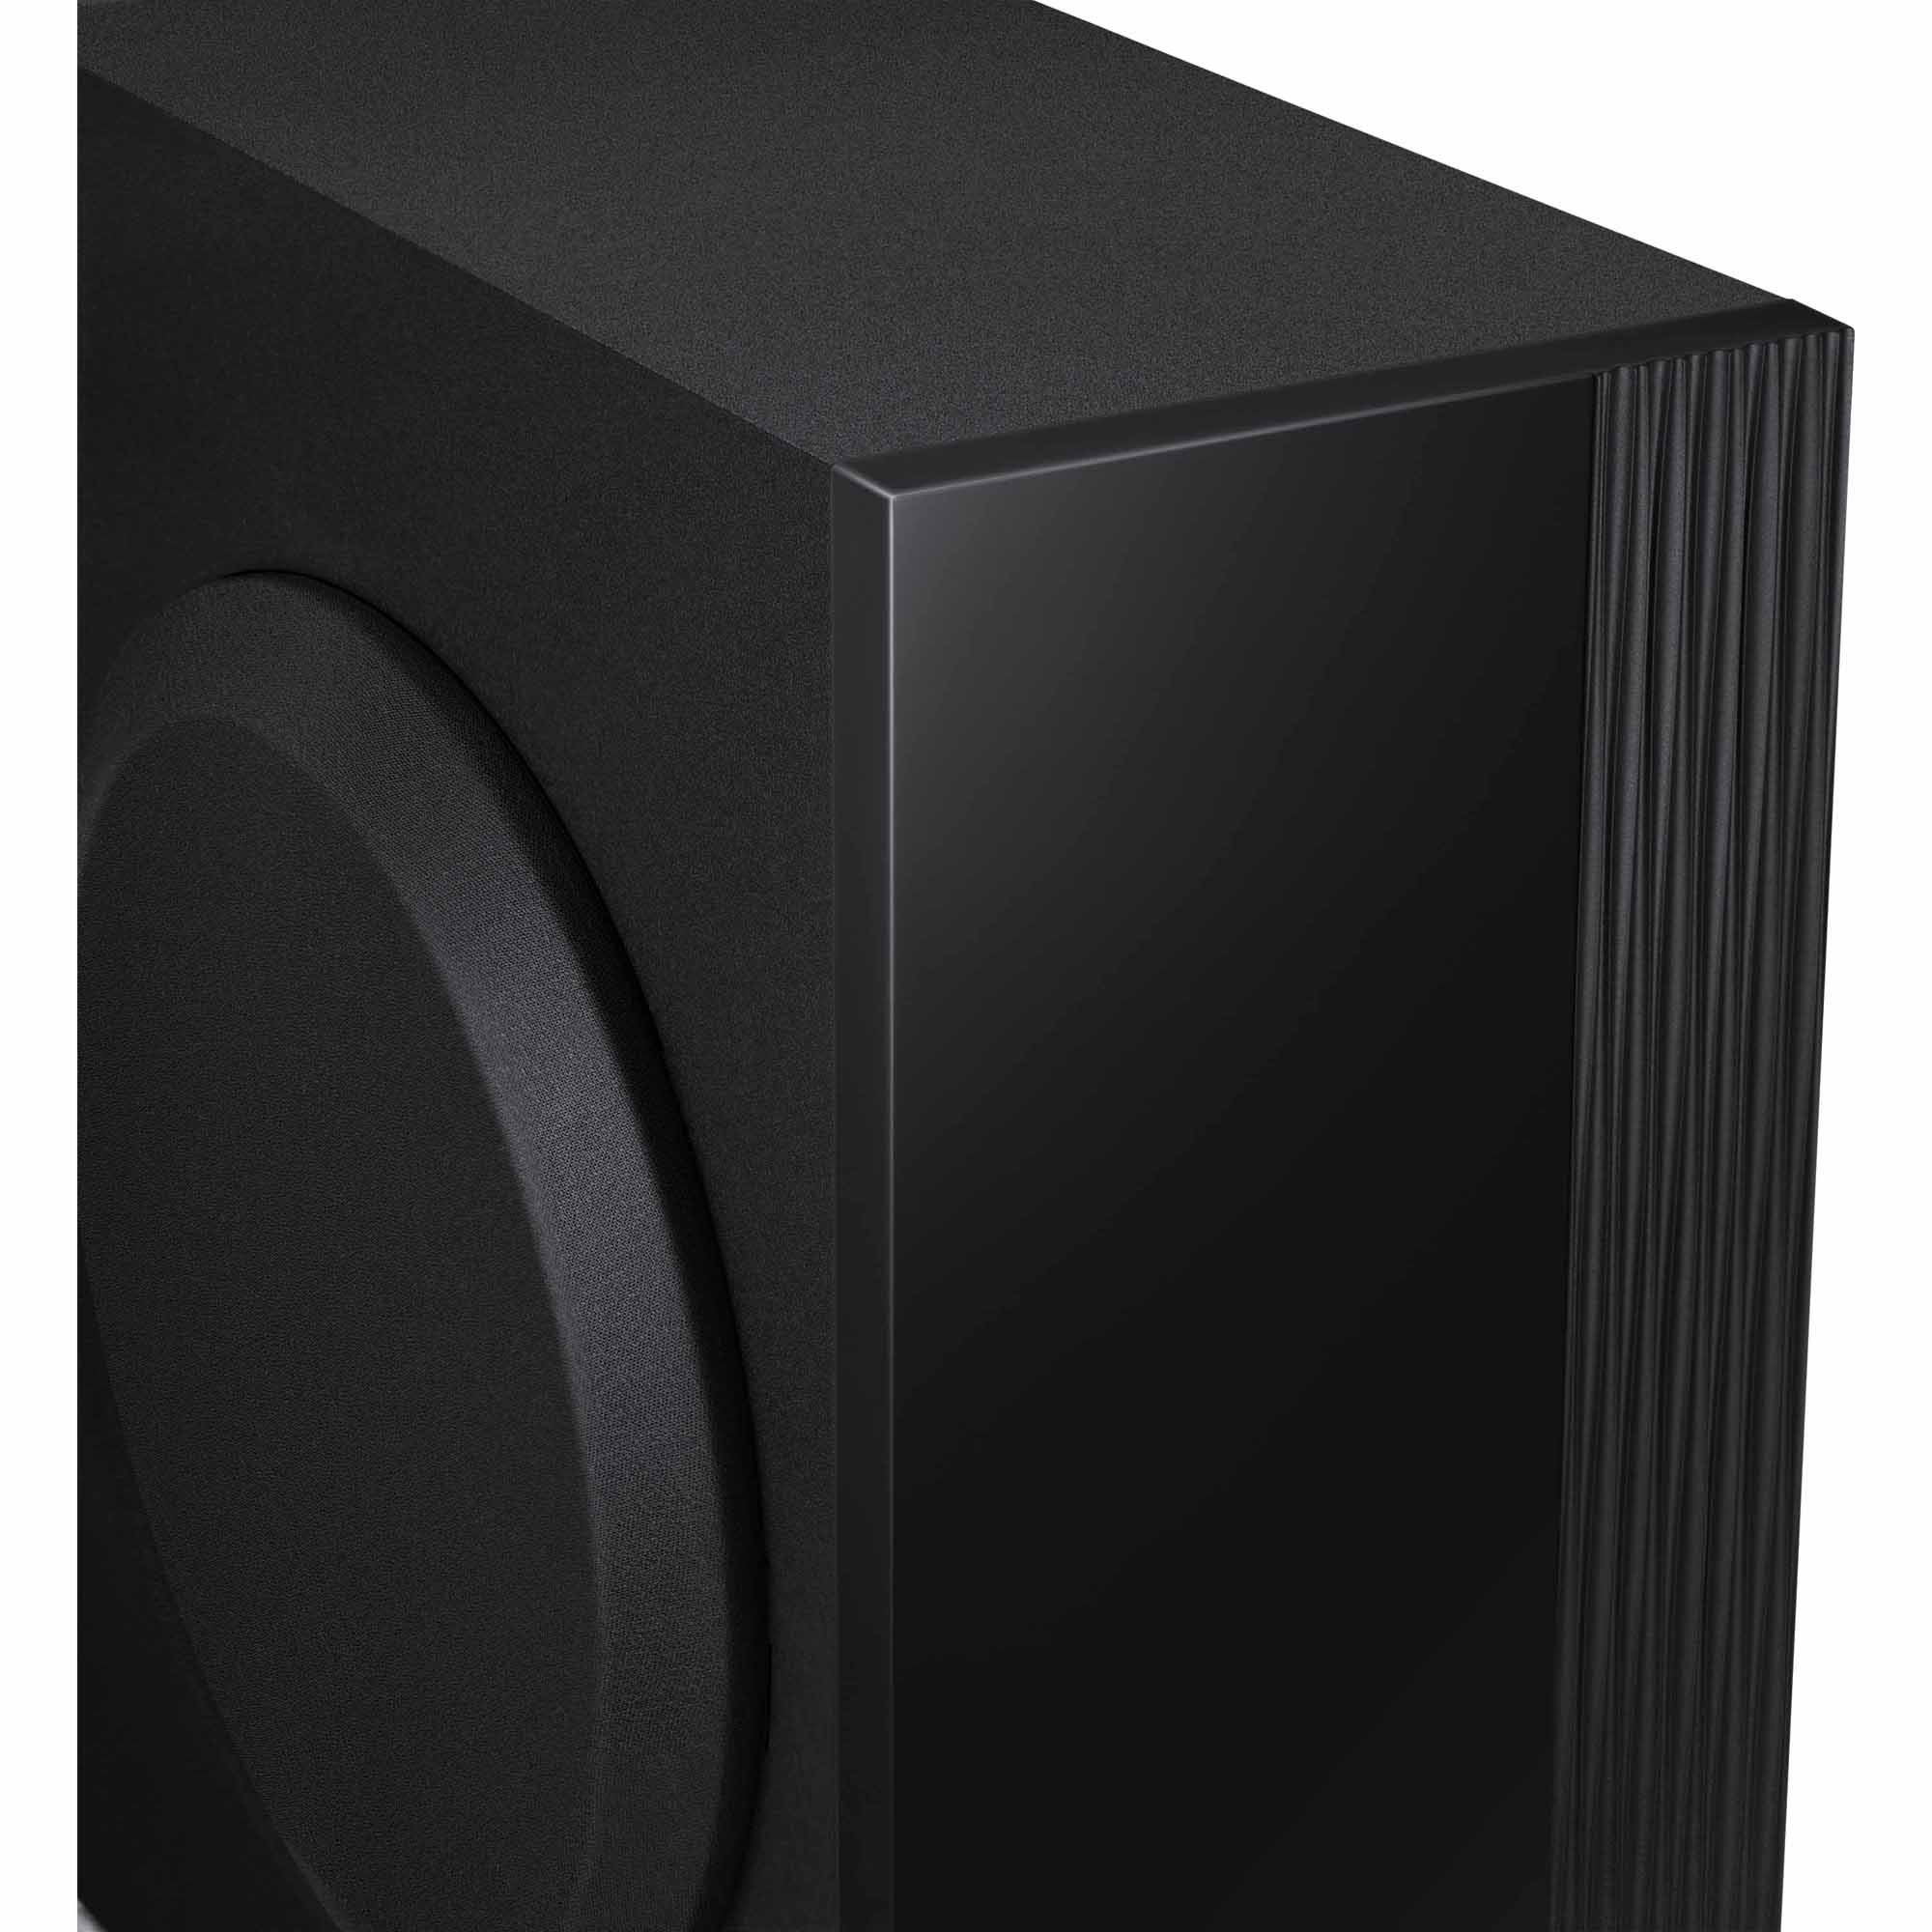 Samsung 5.1-Channel 1000W Home Theater System - HT-J4100